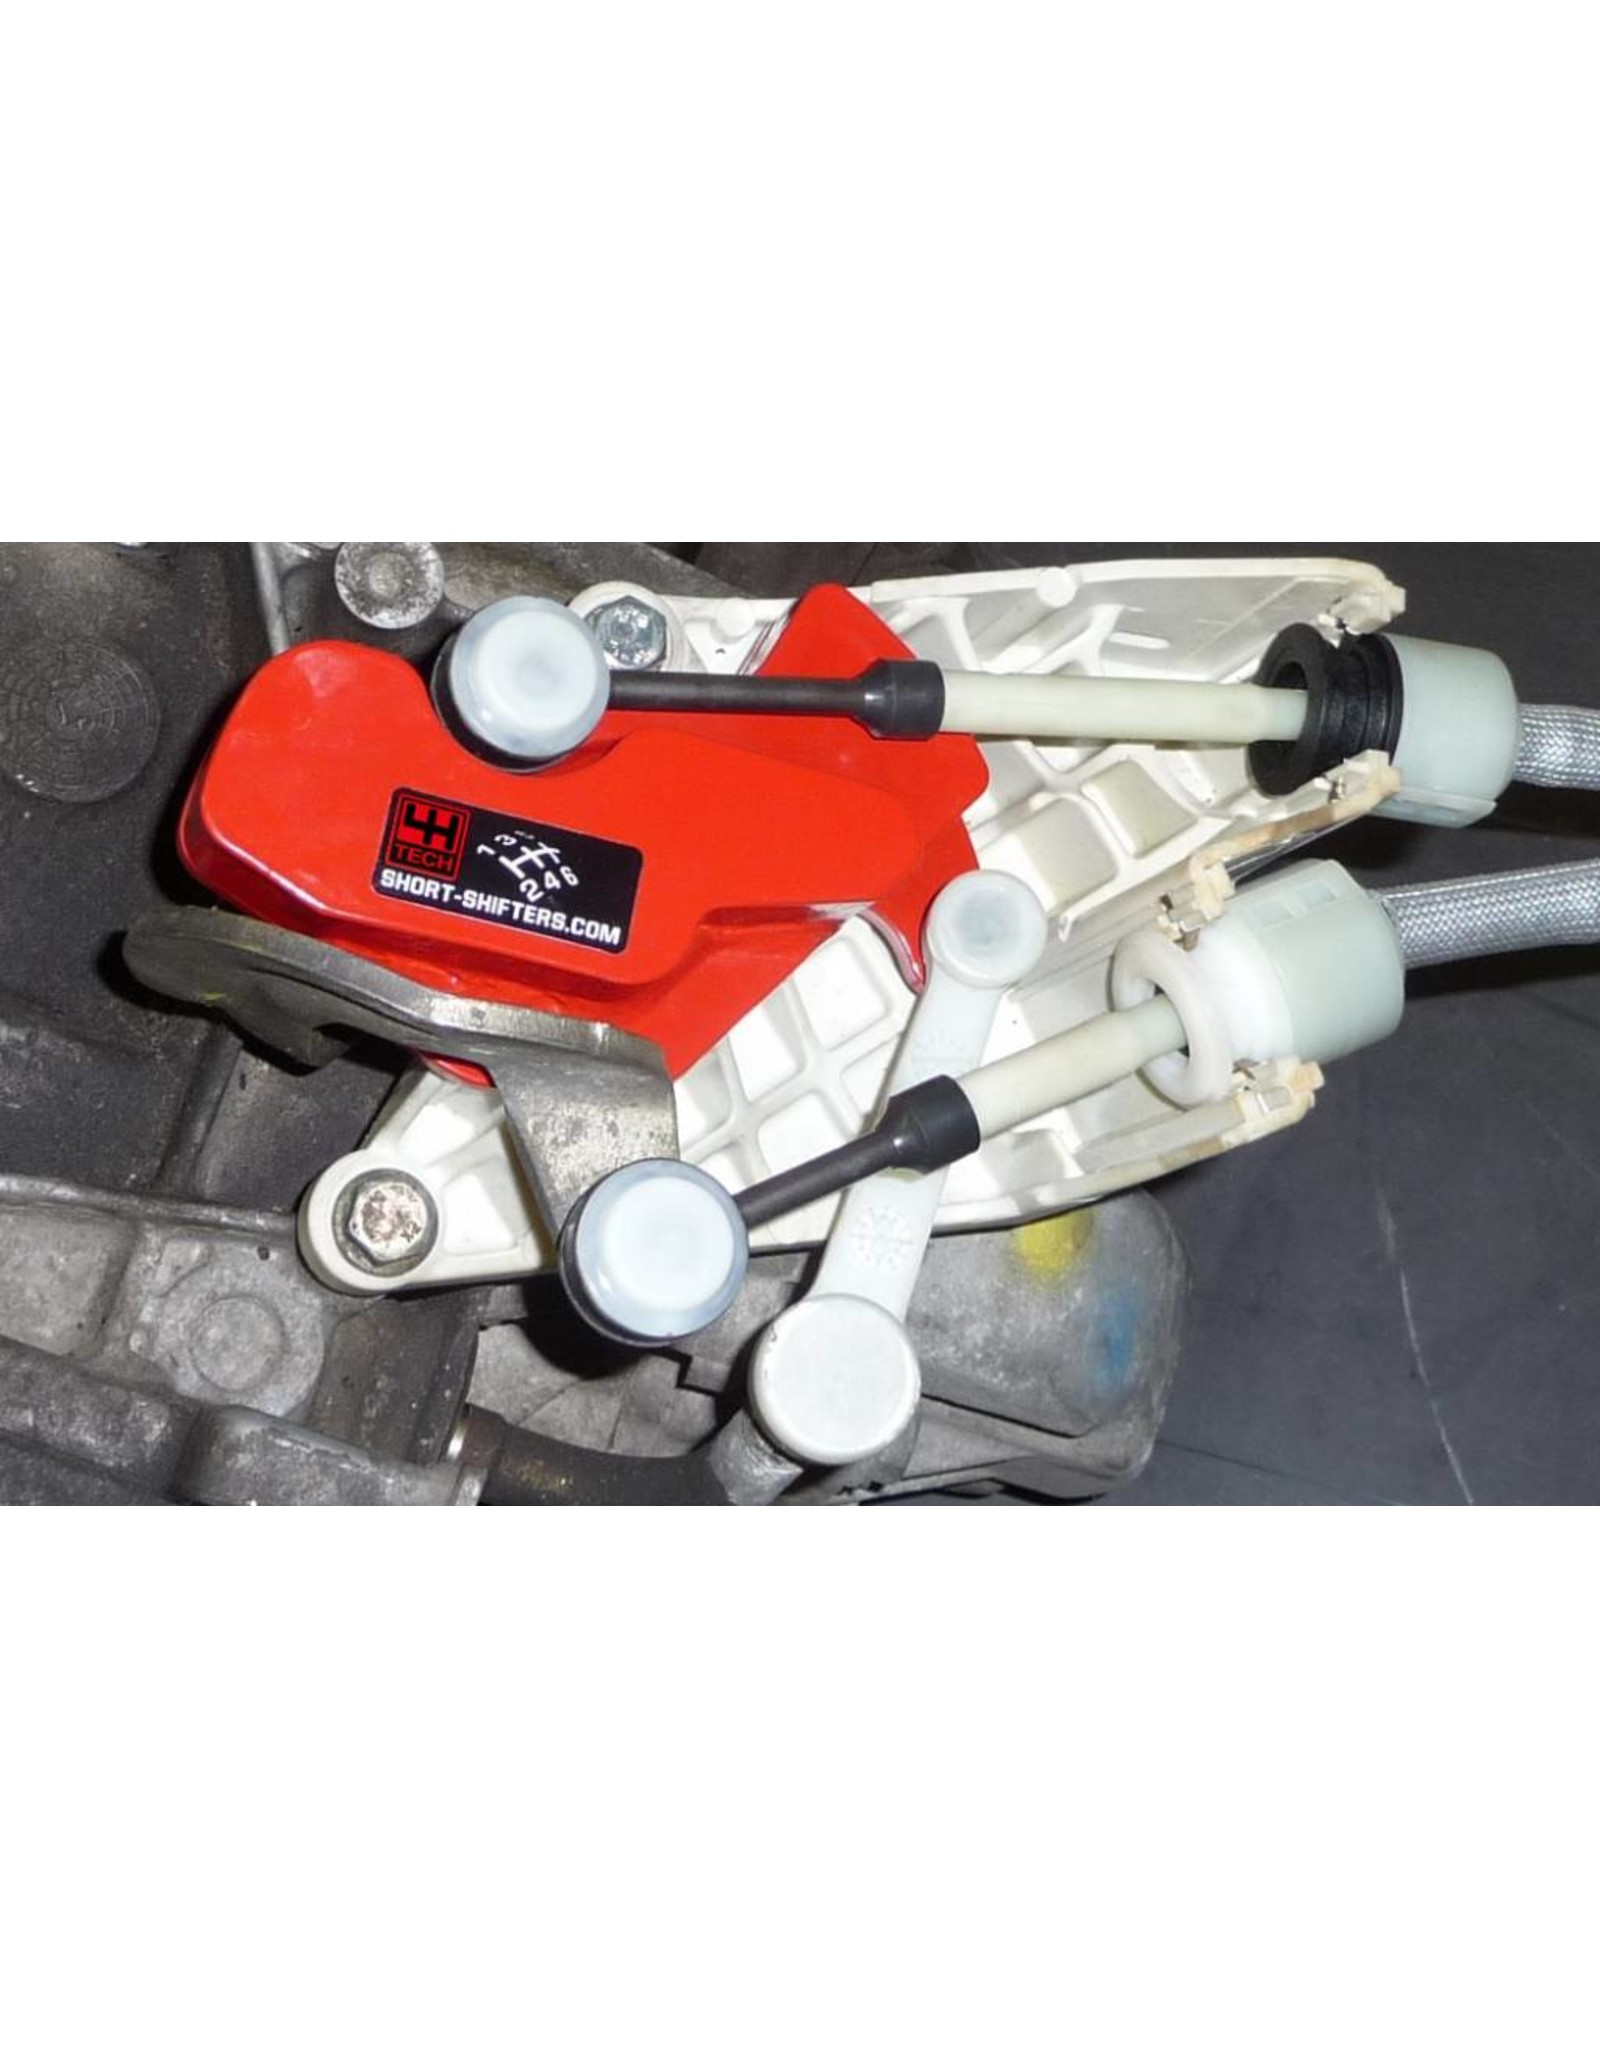 4H-TECH BE4-Shift Short Shifter for Peugeot and Citroën with cable operated BE4 5-speed gearbox. (see applications)